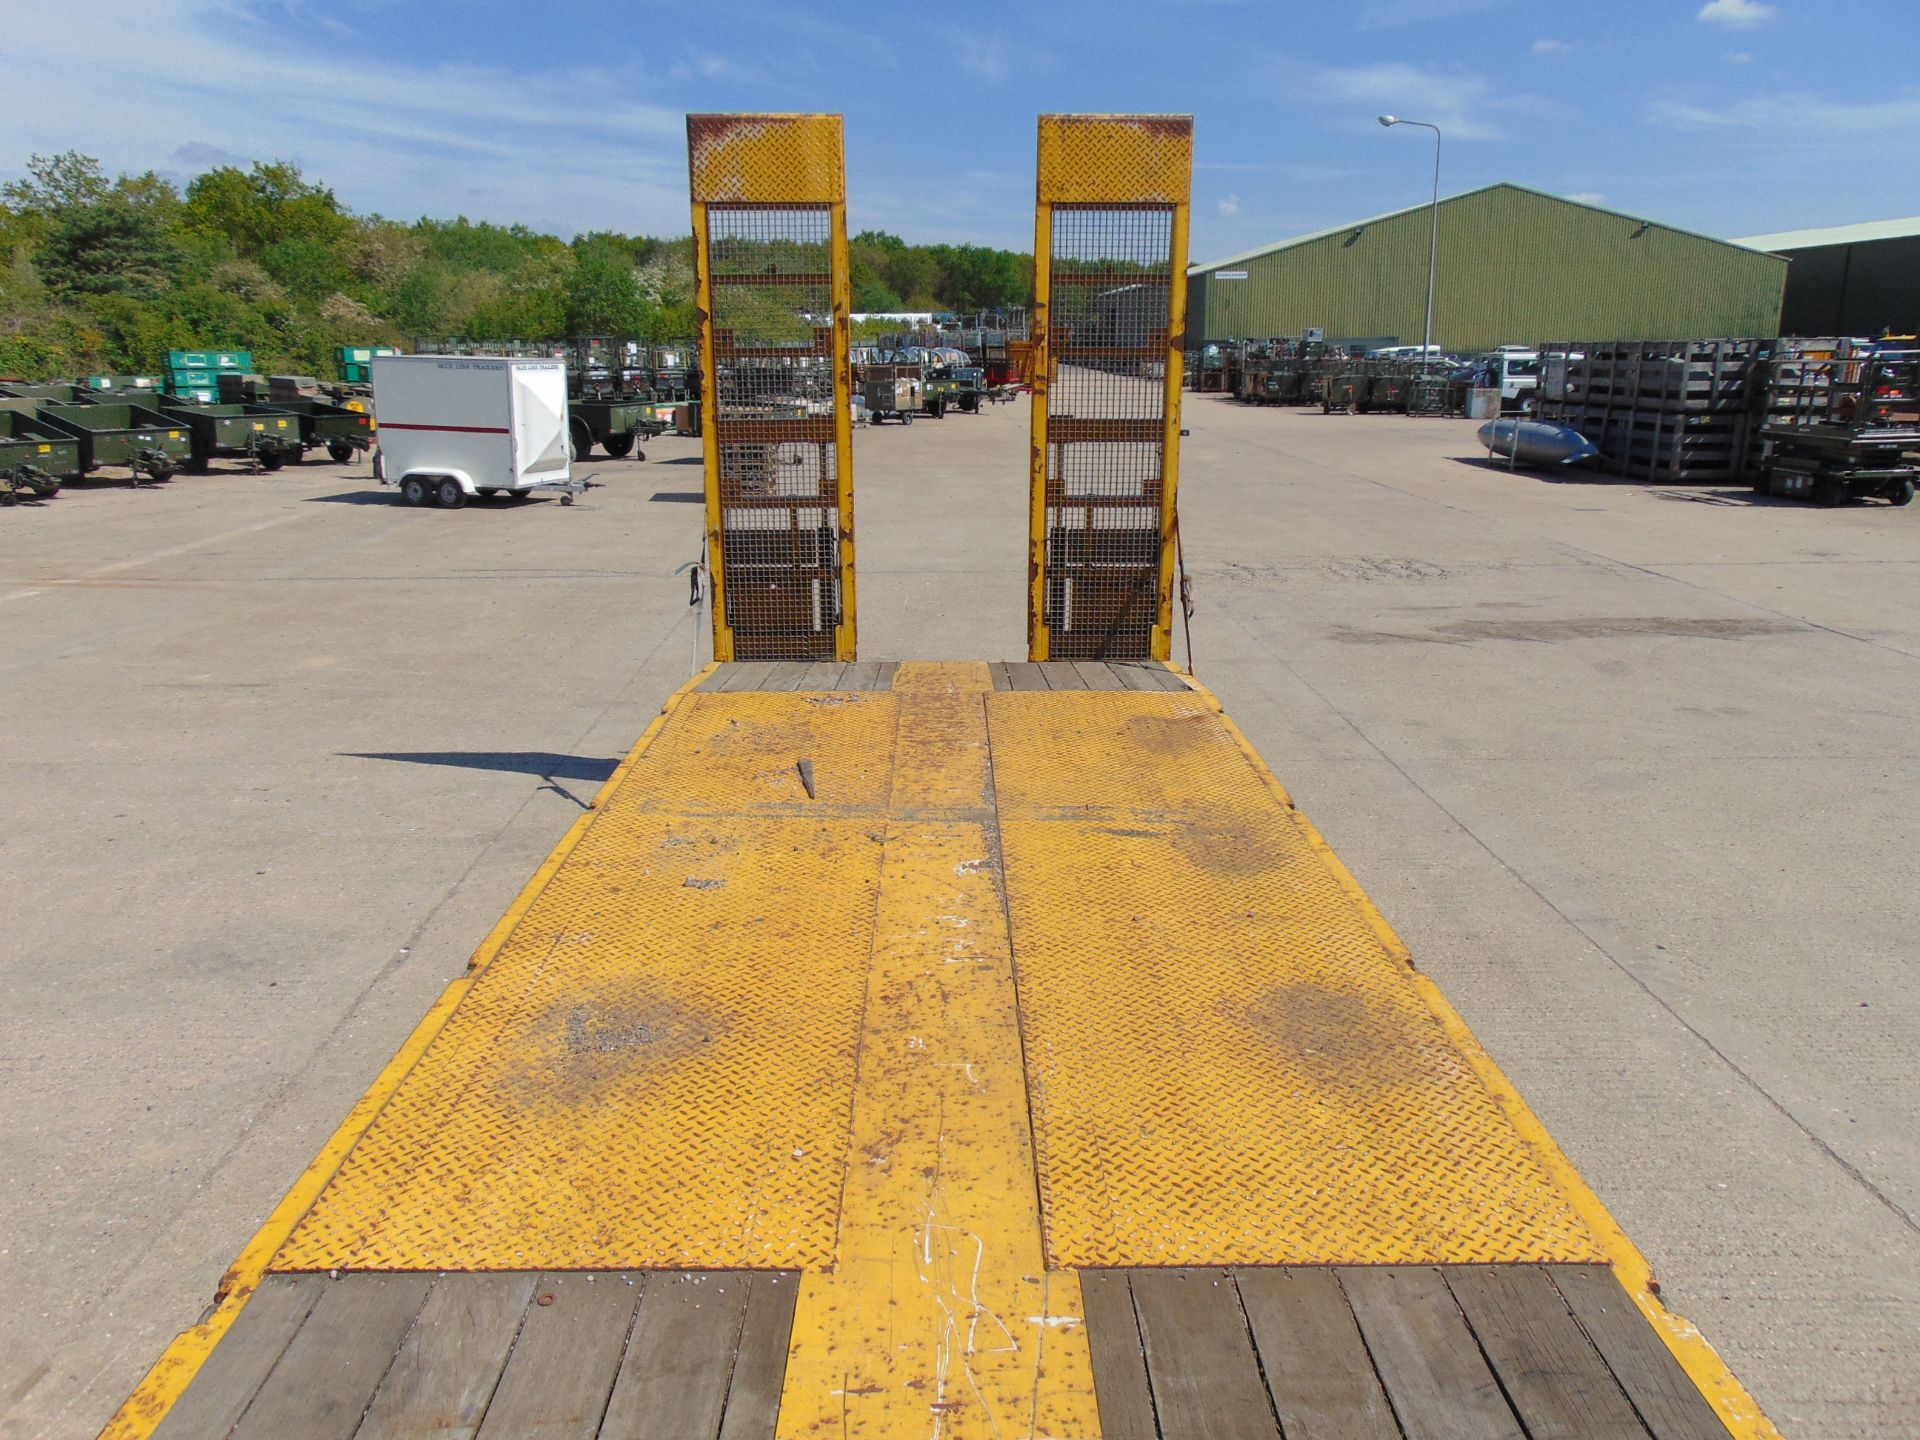 Lot 15 - 2010 Nooteboom OSDS 48-03 Tri Axle Low Loader Trailer